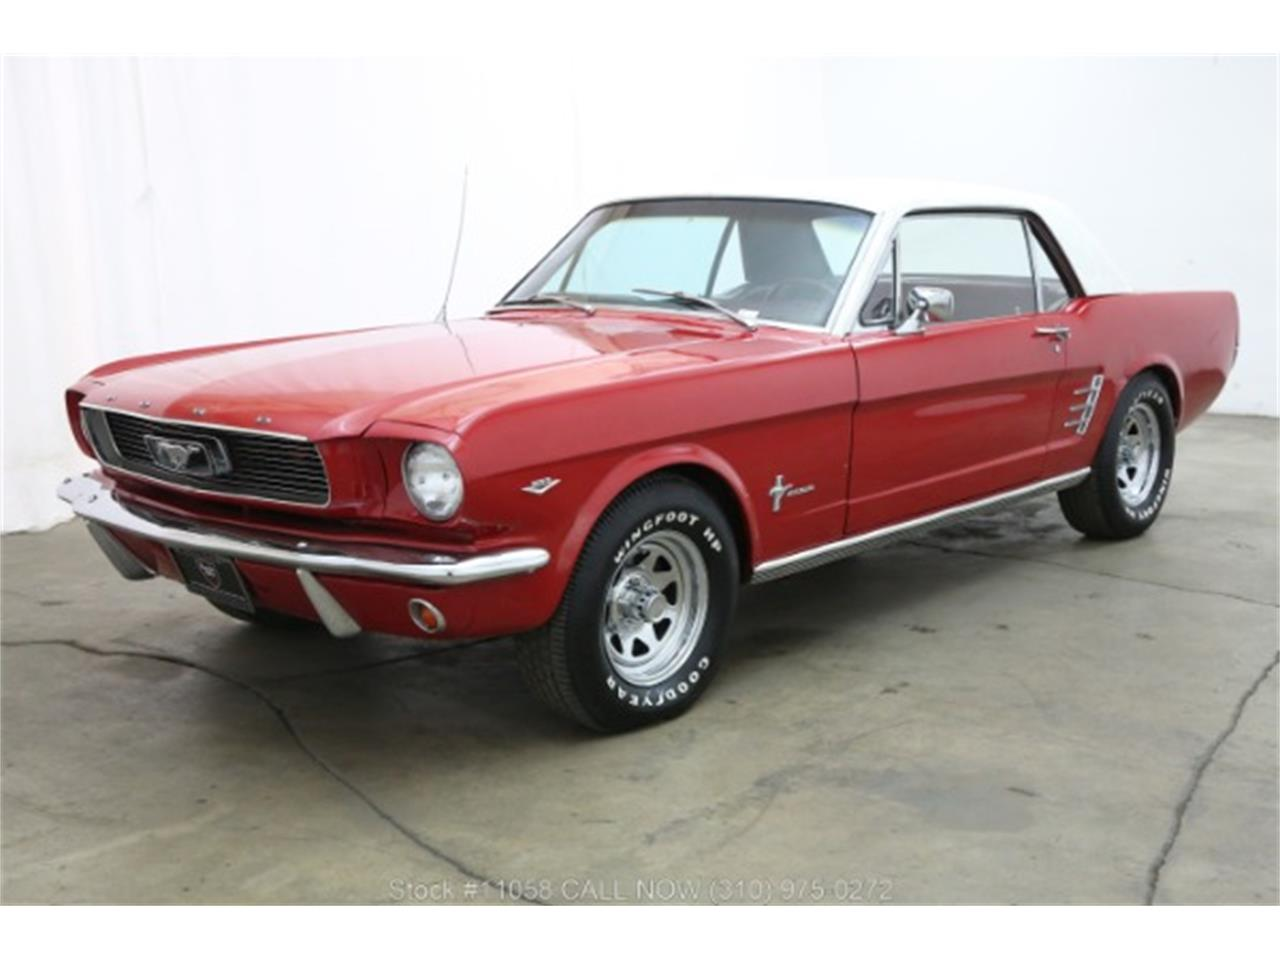 Large Picture of Classic 1966 Mustang located in California - $10,750.00 - QKXT